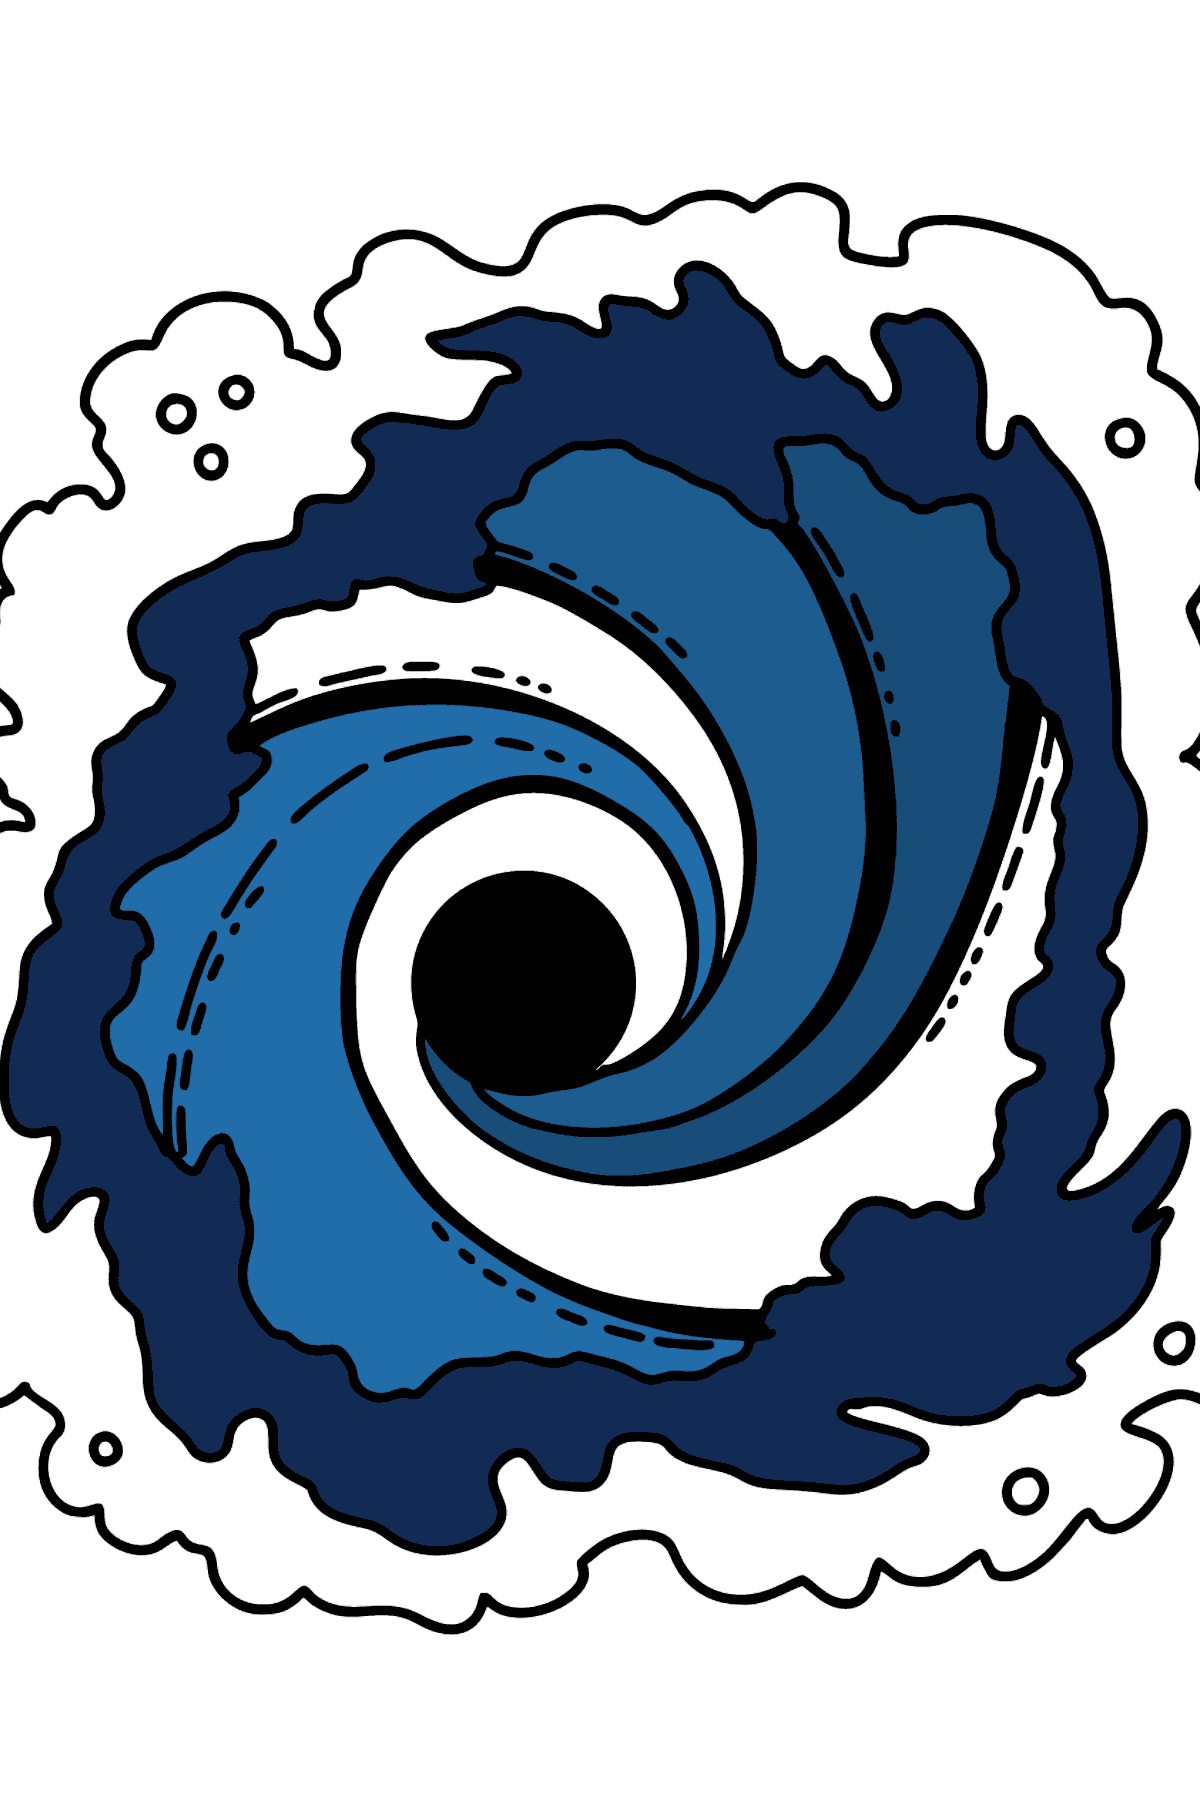 Black Hole coloring page - Coloring Pages for Kids